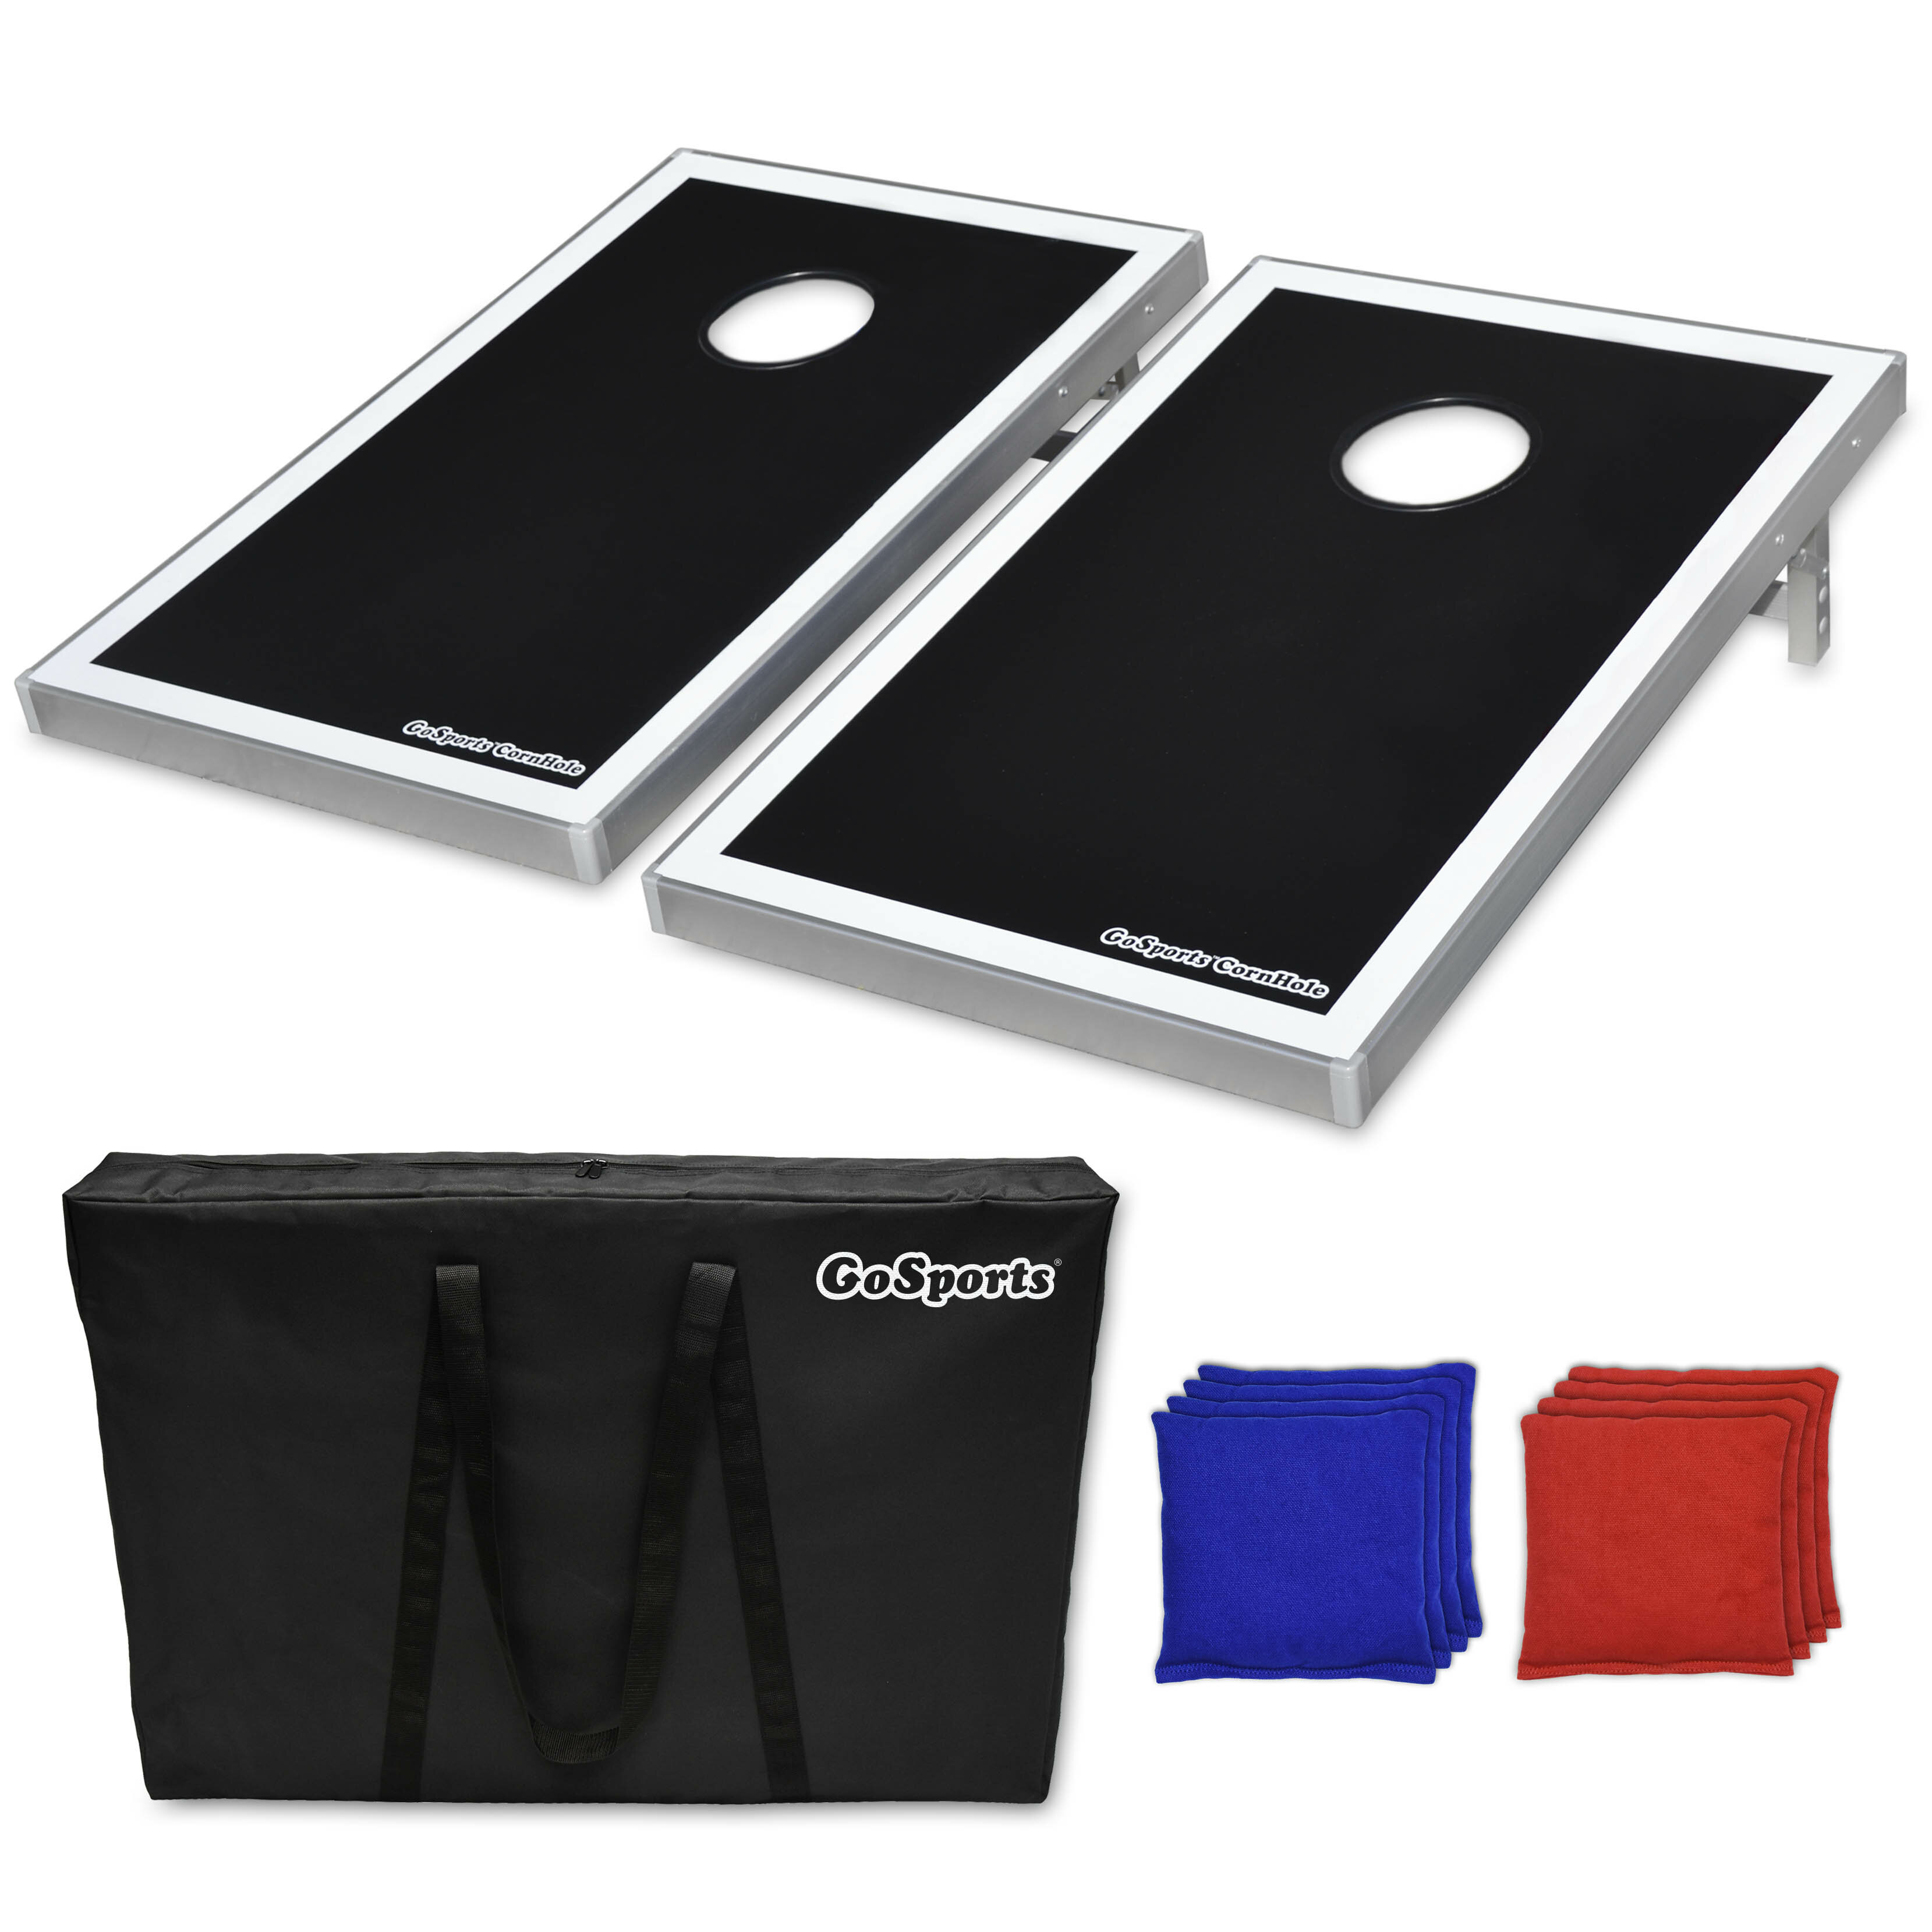 Groovy 2 X 3 Gopong Metal Cornhole Board With Carrying Case Short Links Chair Design For Home Short Linksinfo